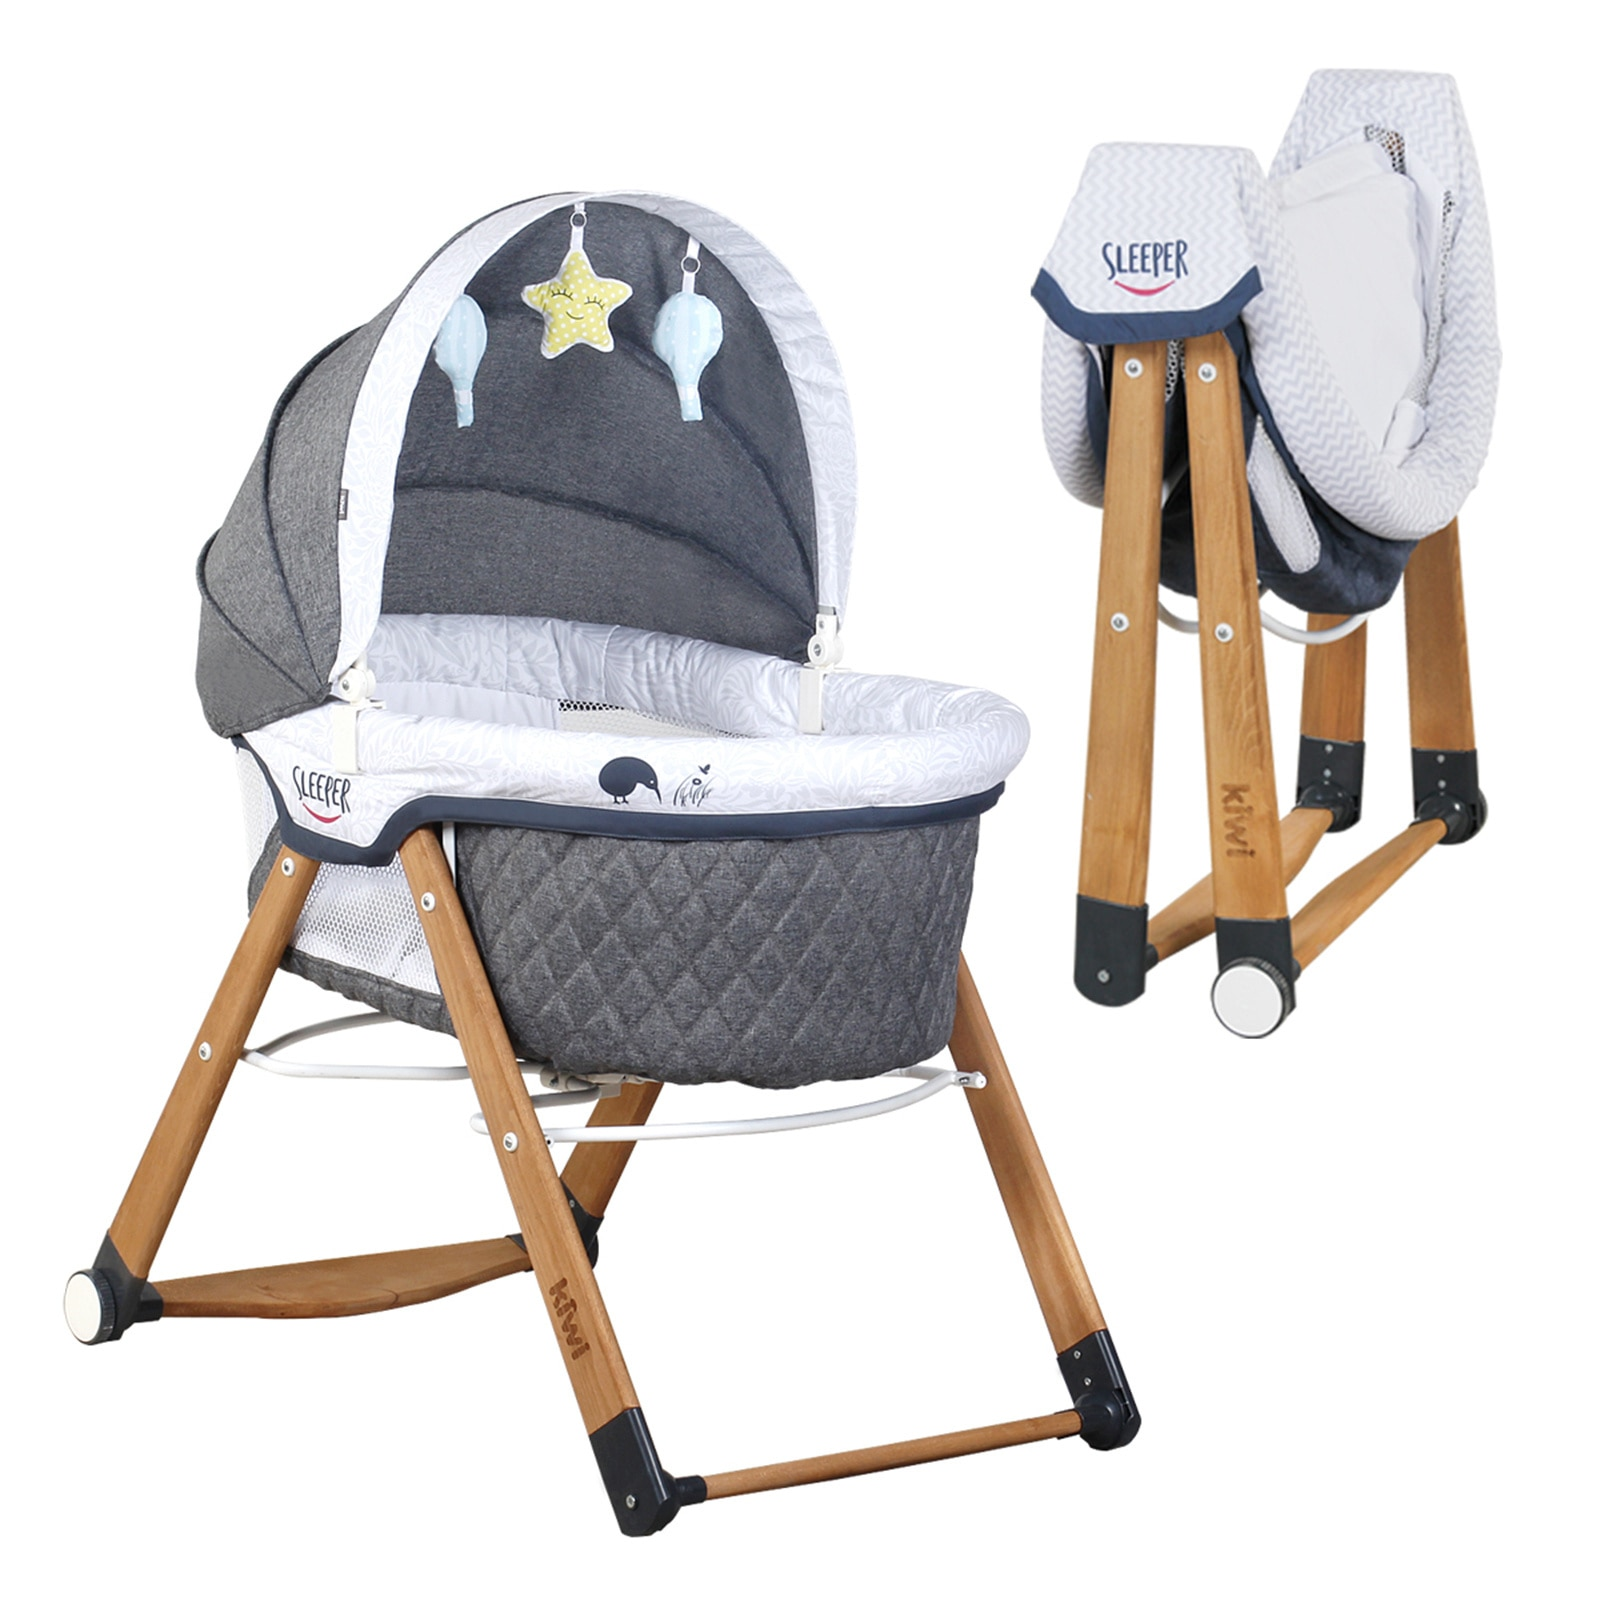 Natural Wooden Rocking Folding Crib Wooden Baby Crib Child Bed Quilt Pillow Mosquito Net Cradle Rocking Chair Swing